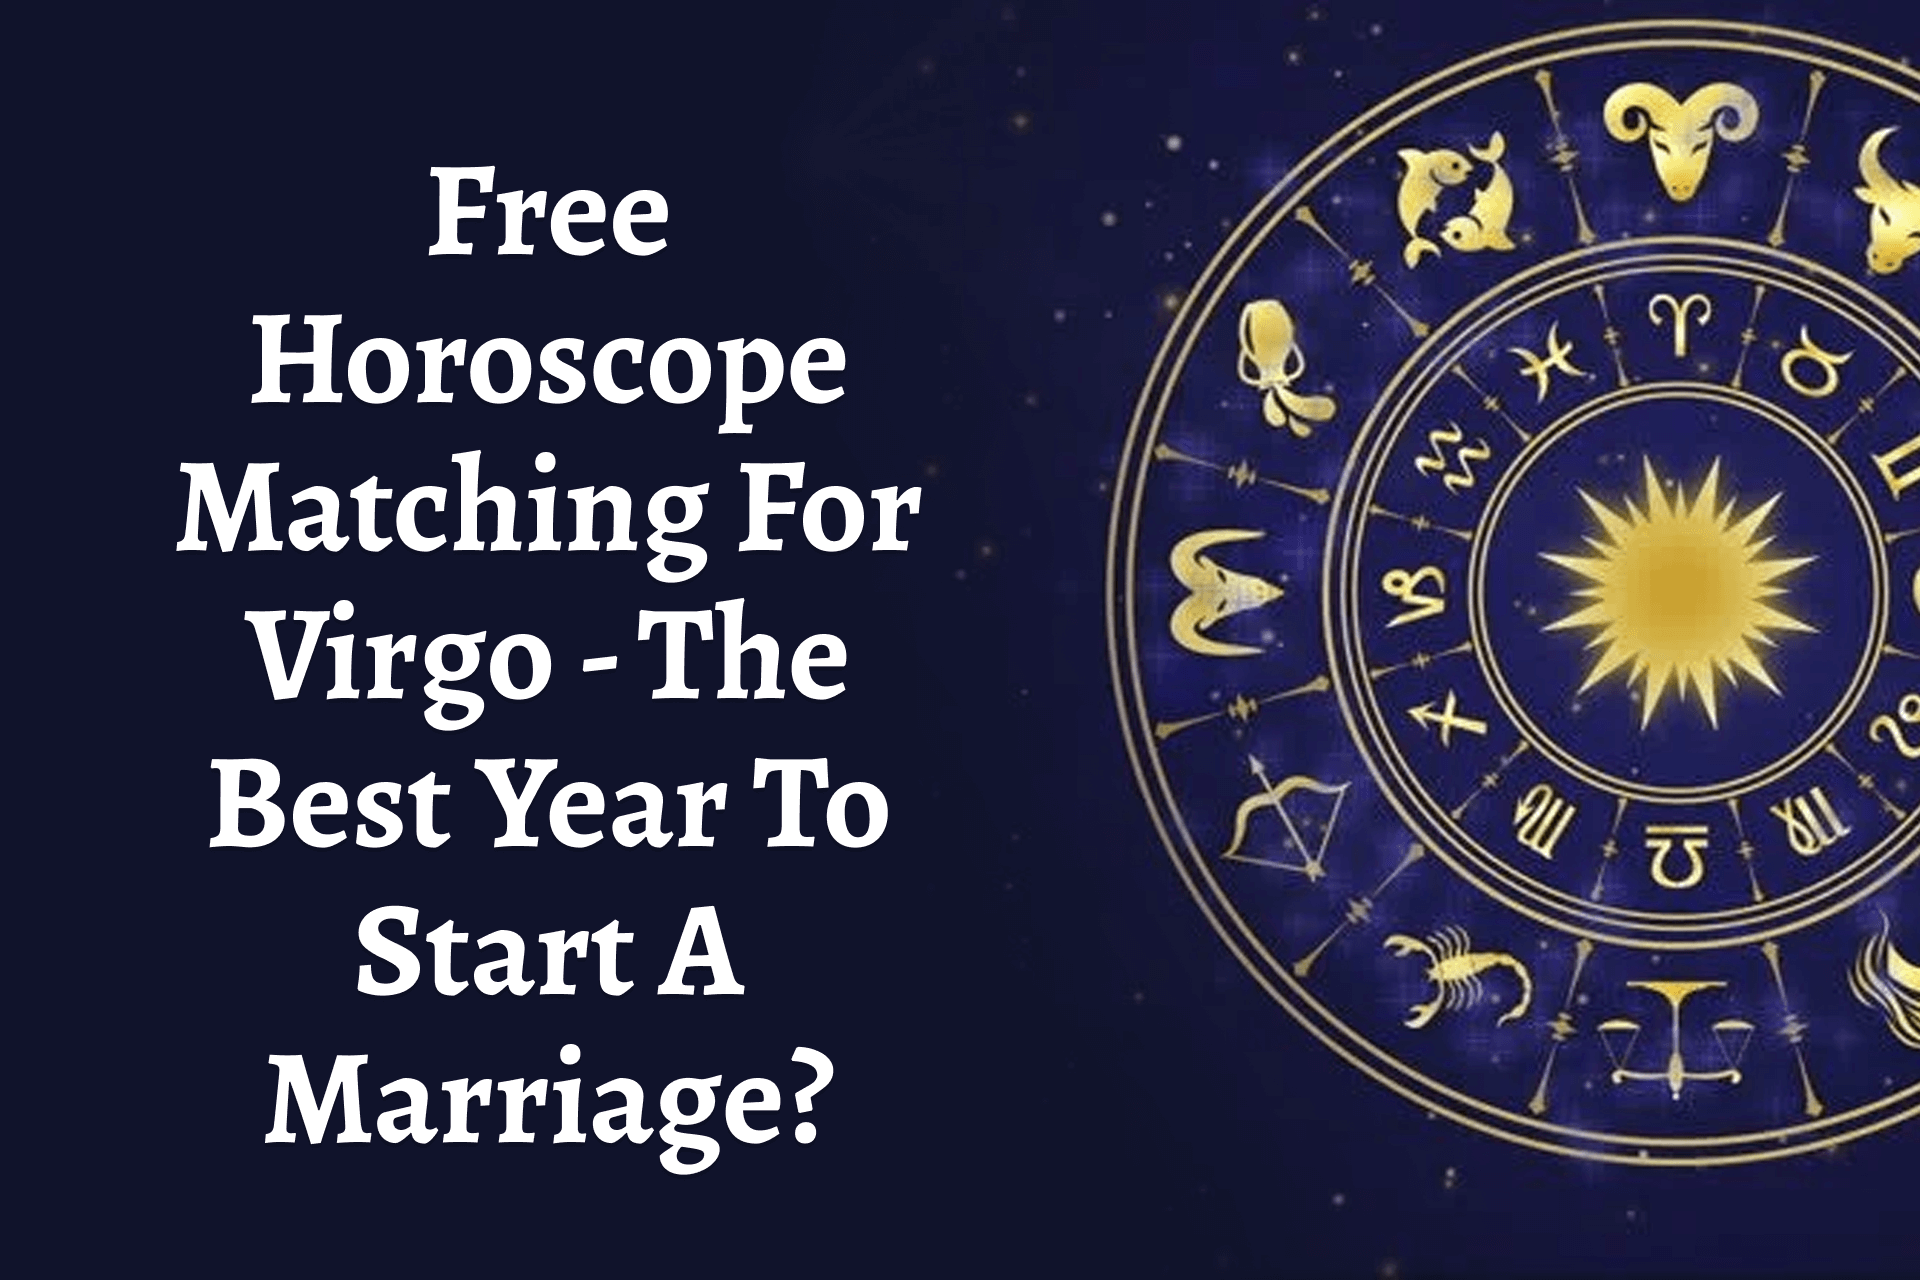 Free Horoscope Matching – The Best Year To Start A Marriage?